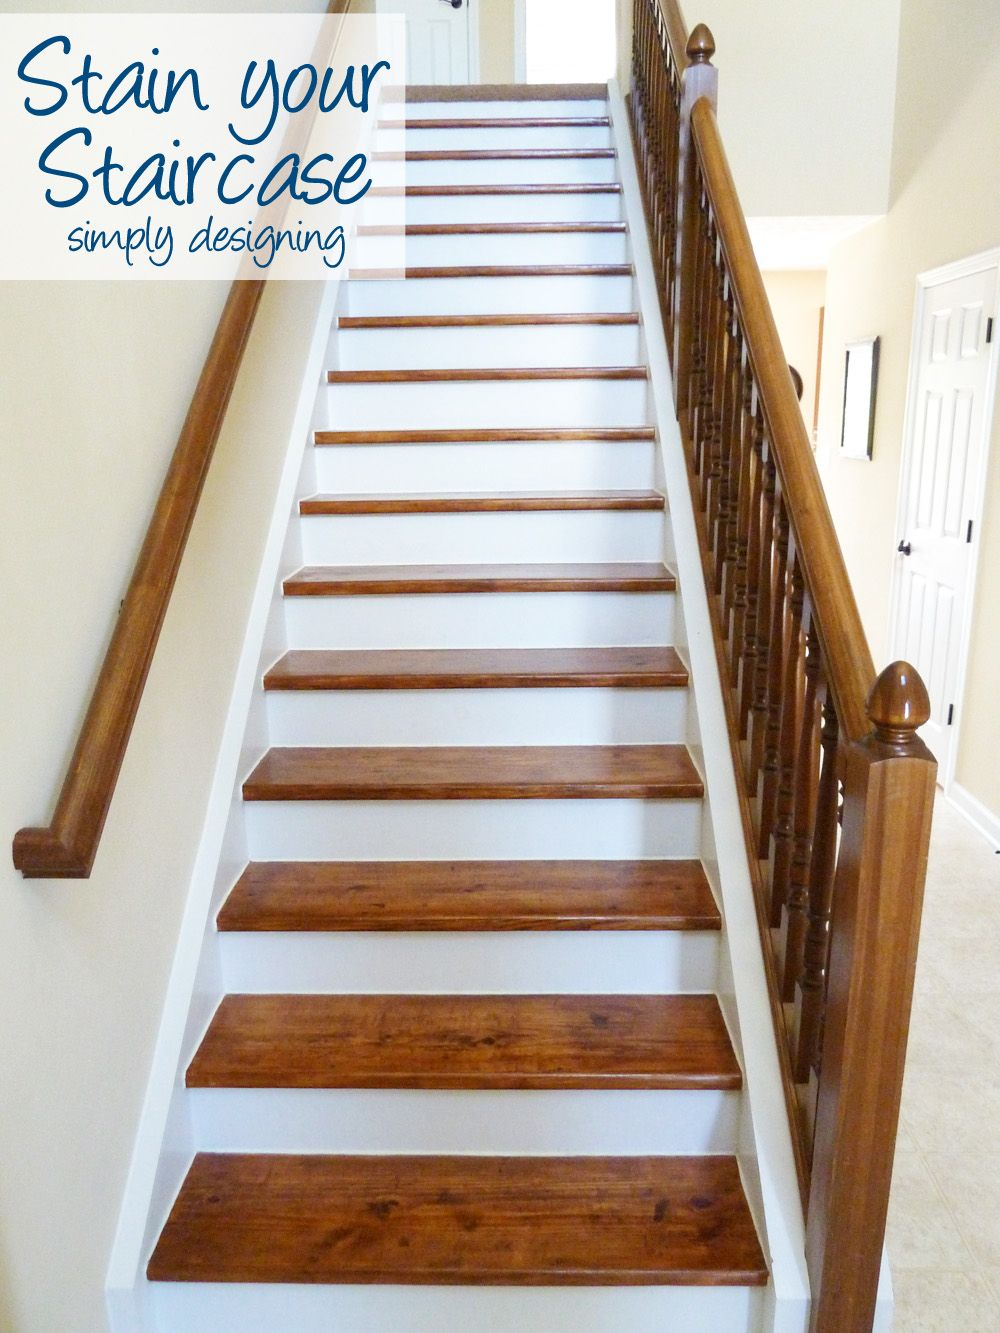 Staircase Make Over Part 6 The Finishing Touches Refinish